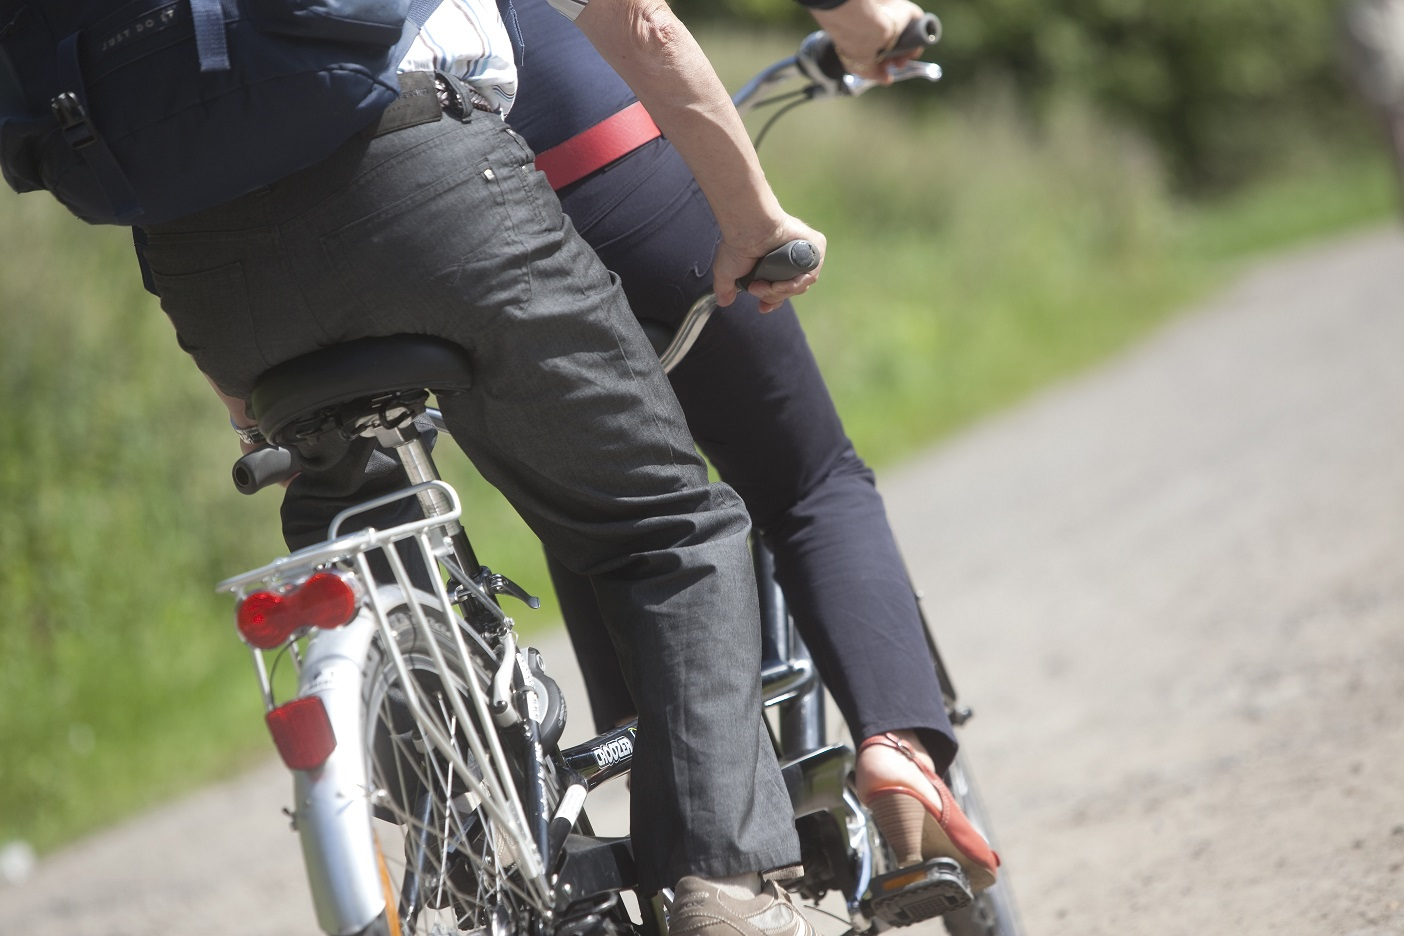 Recreational hikers and cyclists